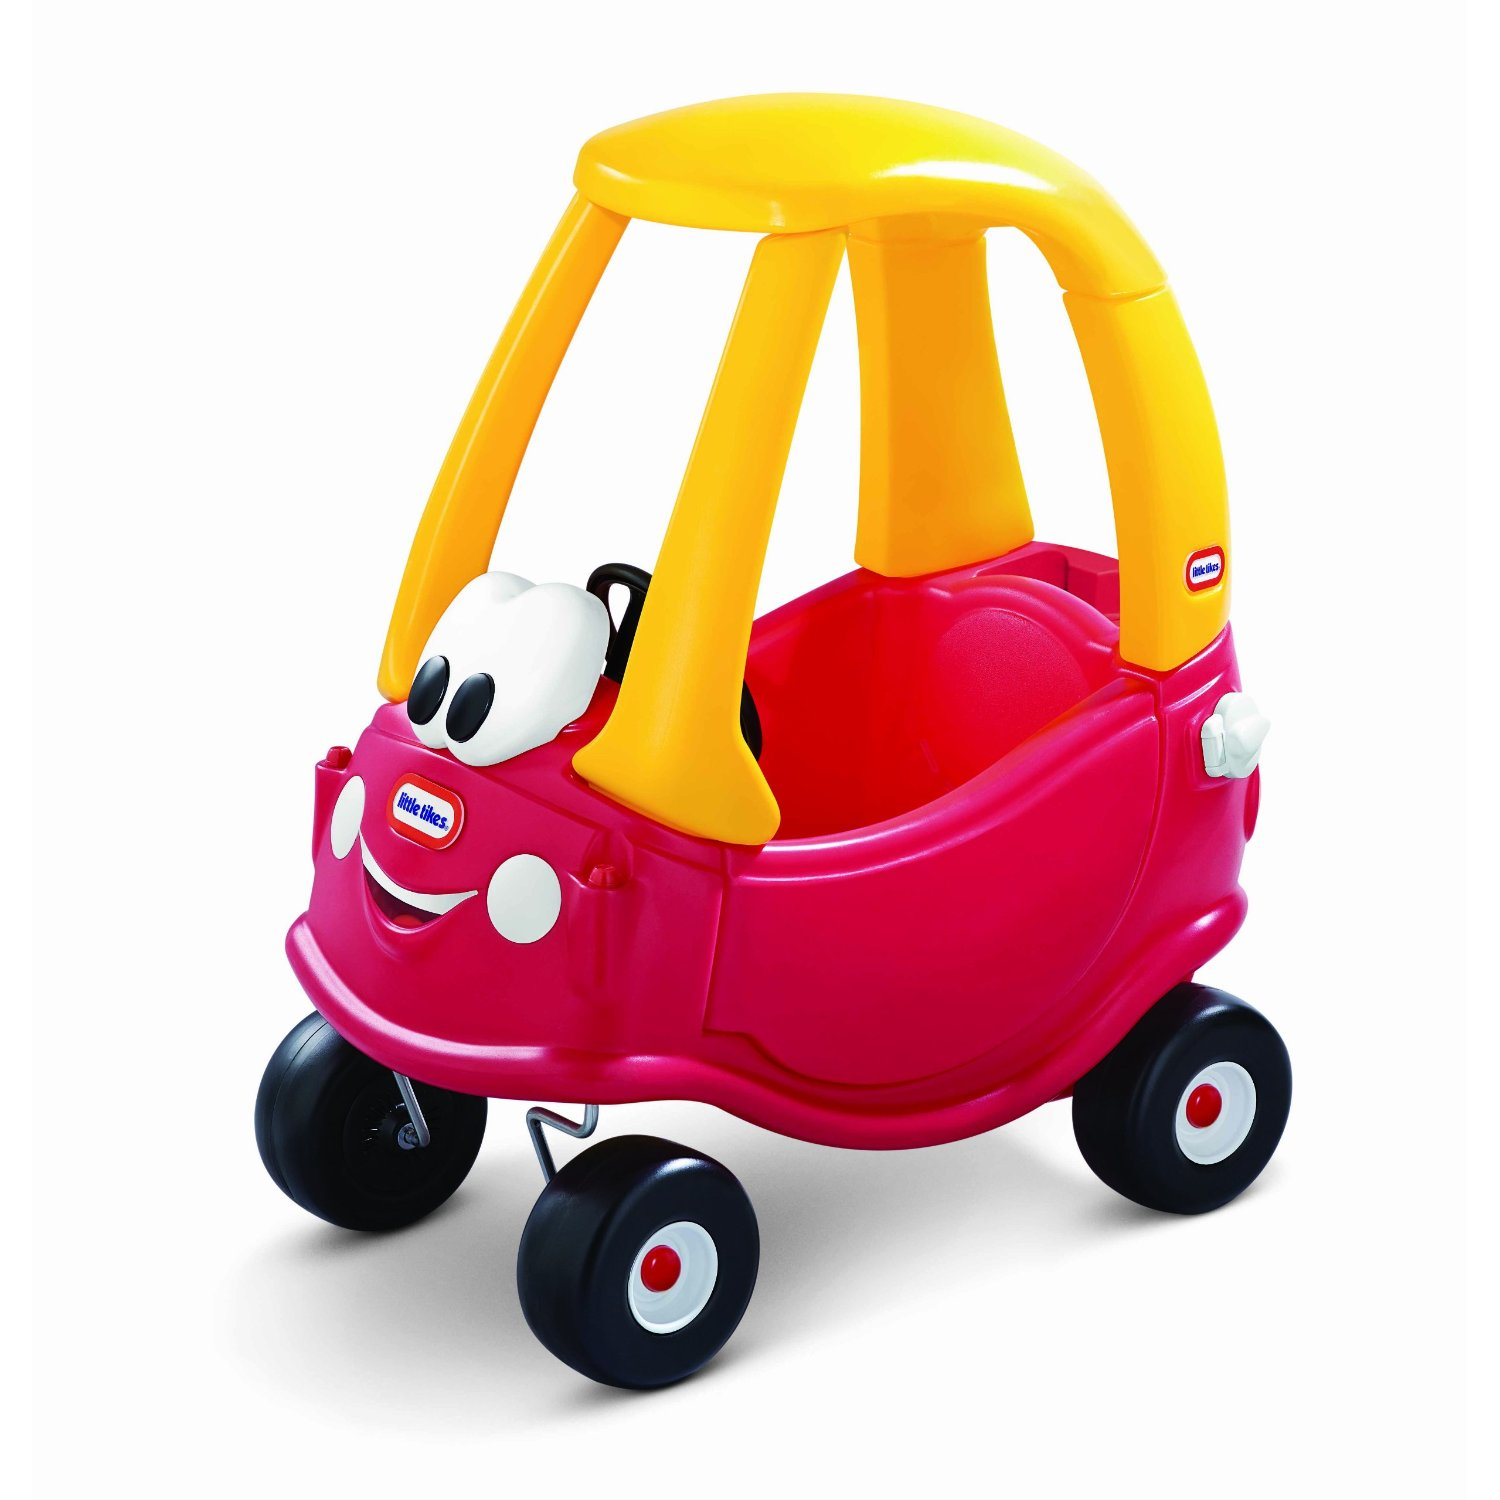 lil tykes car design with red and yellow color